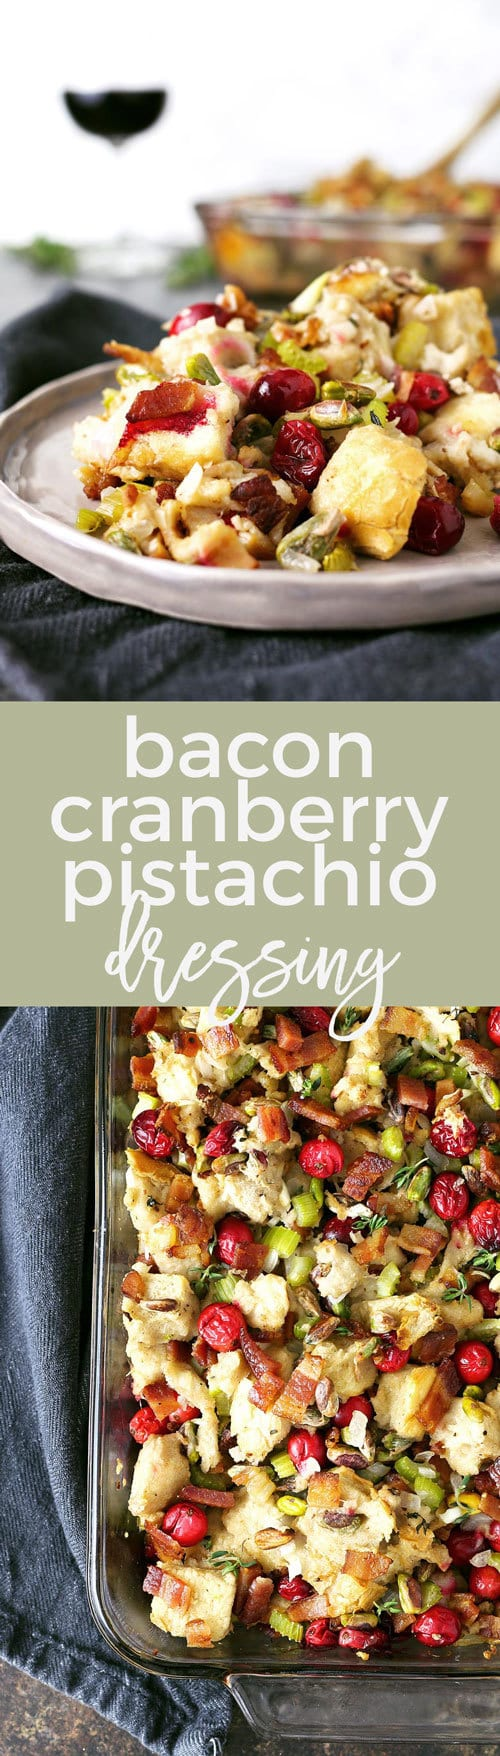 Homemade bacon cranberry pistachio dressing - perfect for Thanksgiving! Whether you put it in the bird (then it's stuffing) or on the side, no holiday meal is complete without it! | honeyandbirch.com